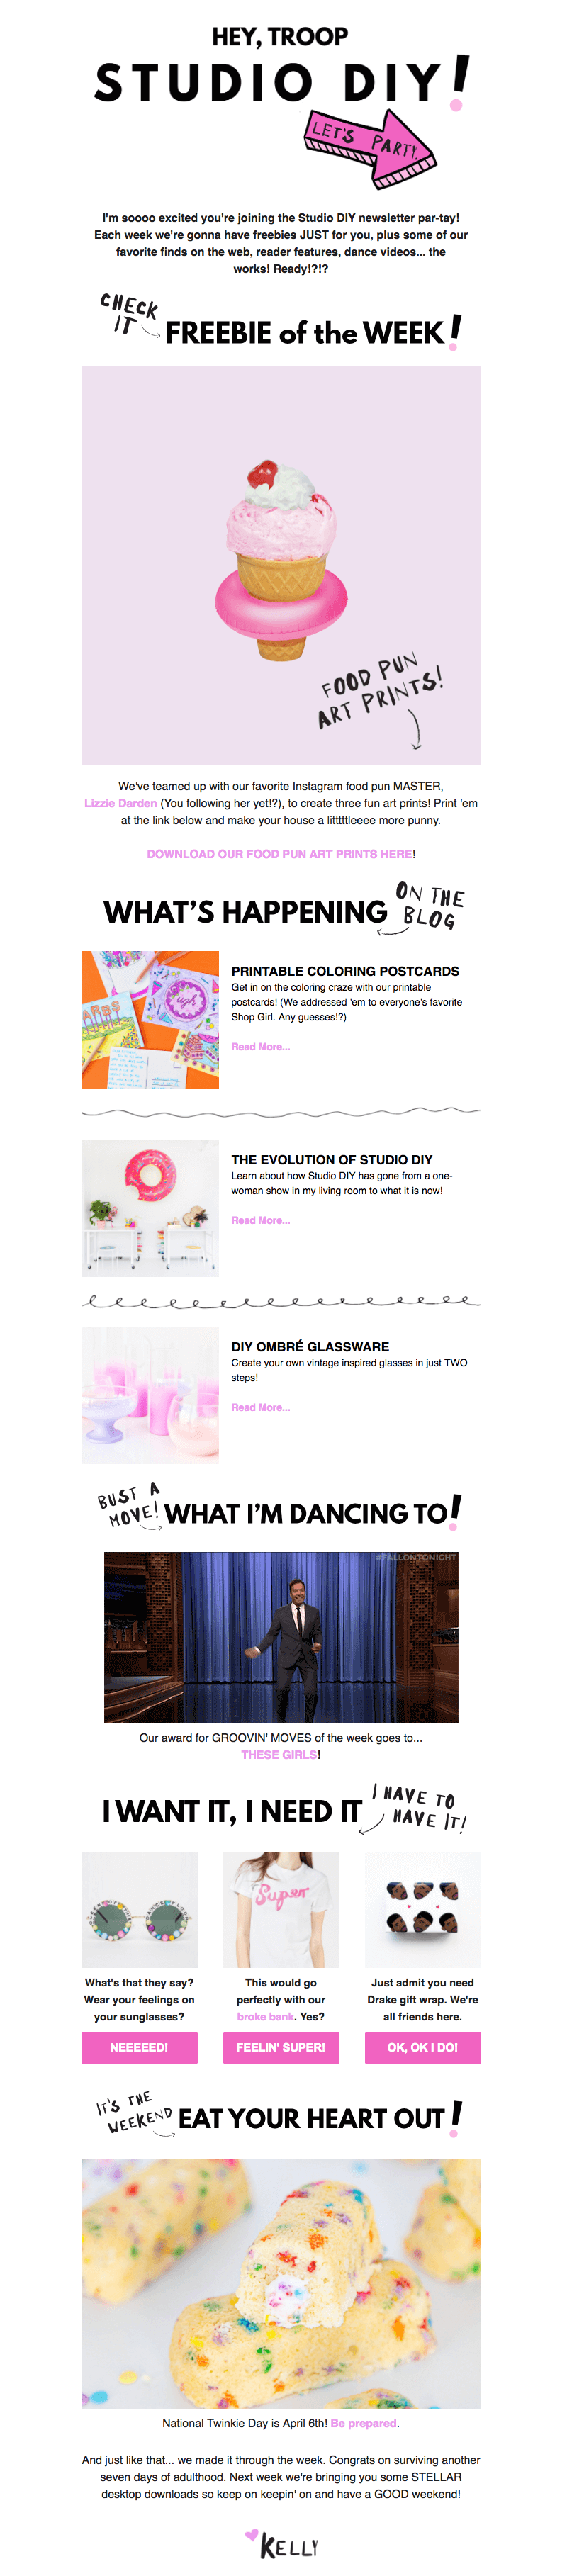 studio diy welcome email design tips